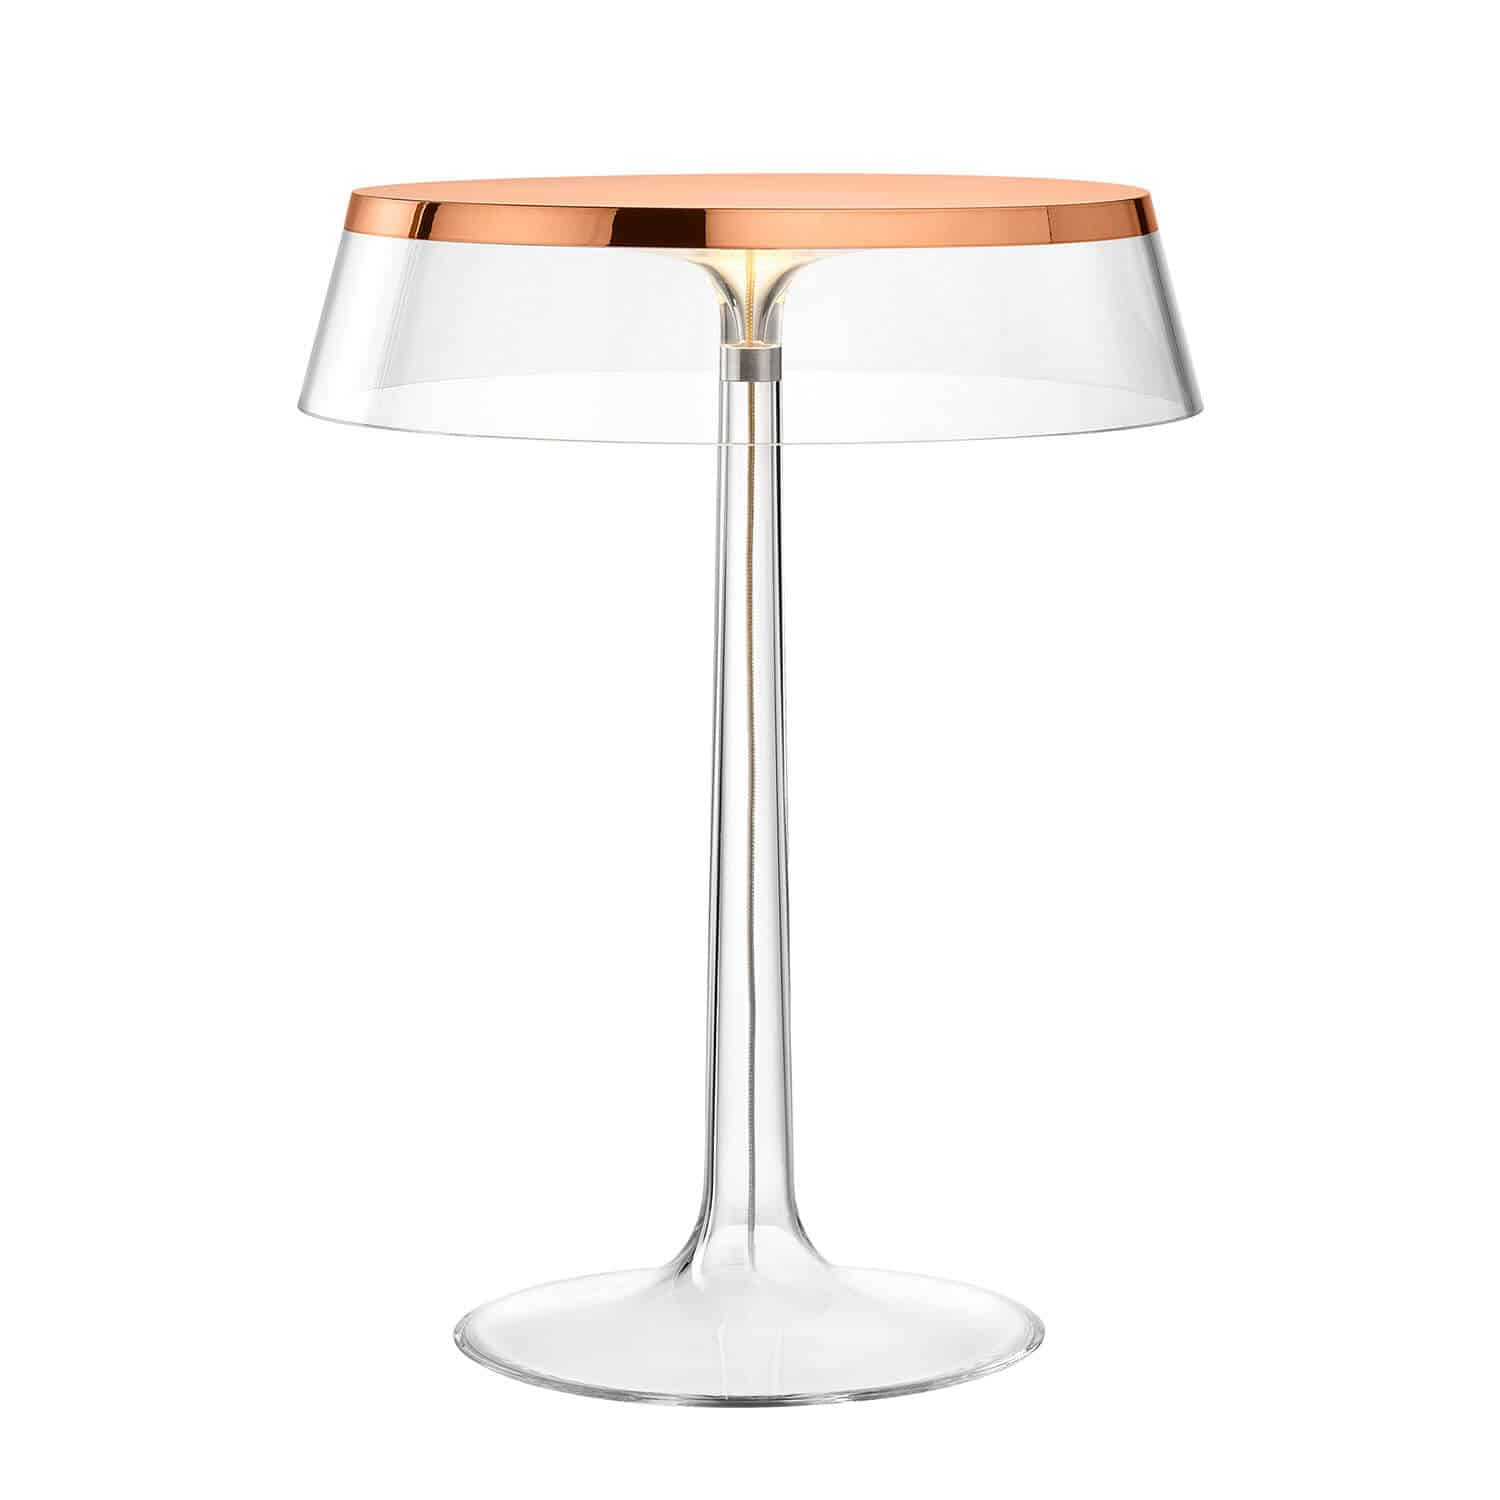 new philippe starck lighting collection launched by flos